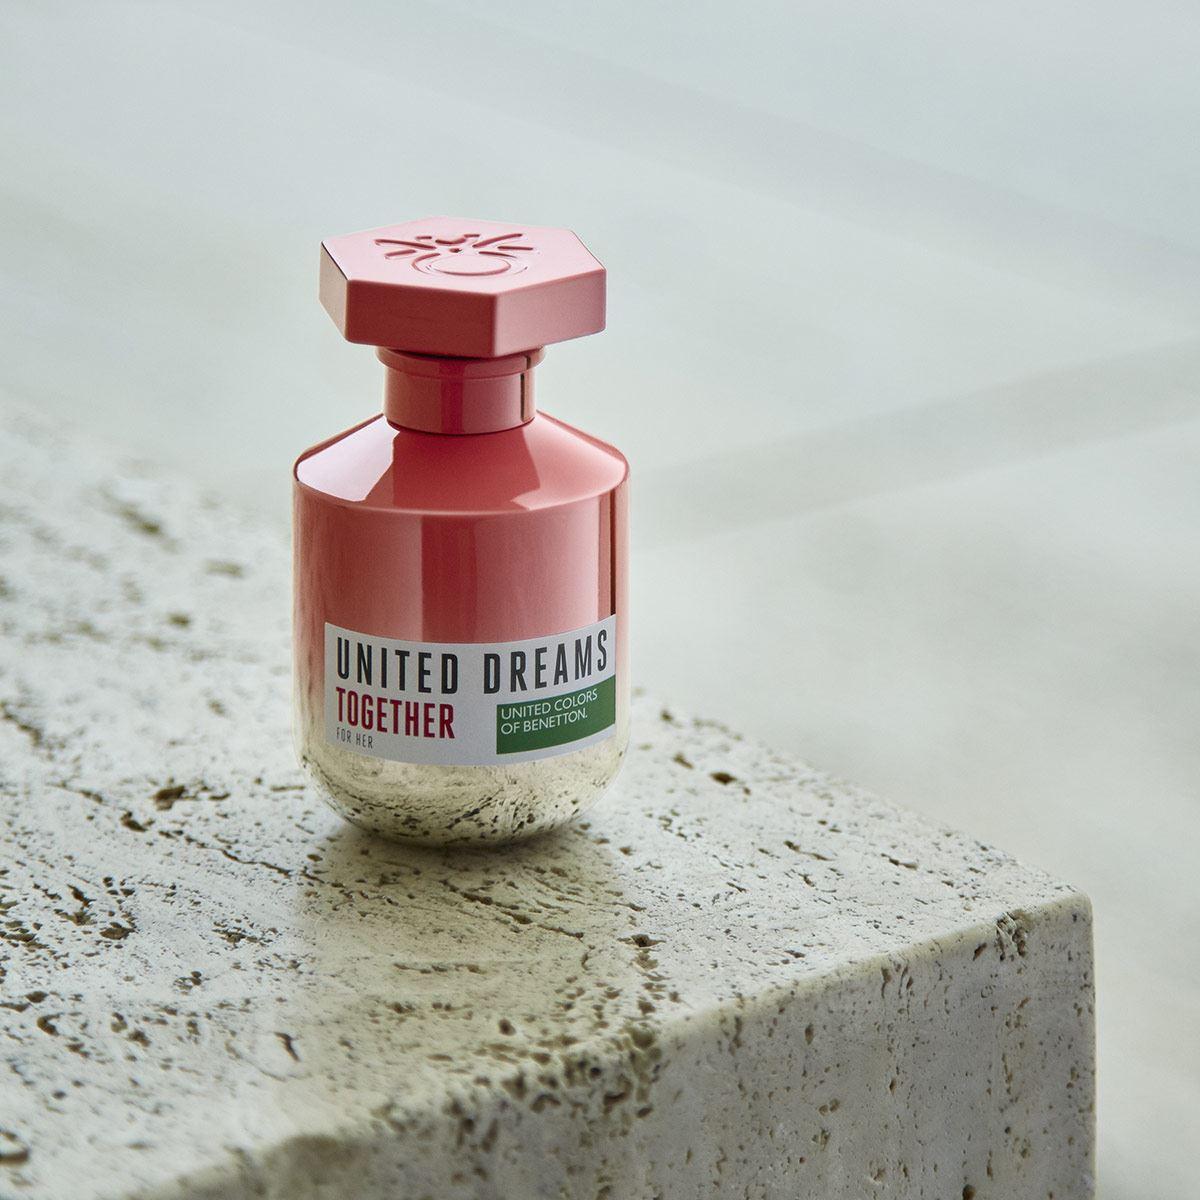 Fragancia para dama, Benetton, United Dreams Together for her, EDT 80 ML + 2 boosters 10ML